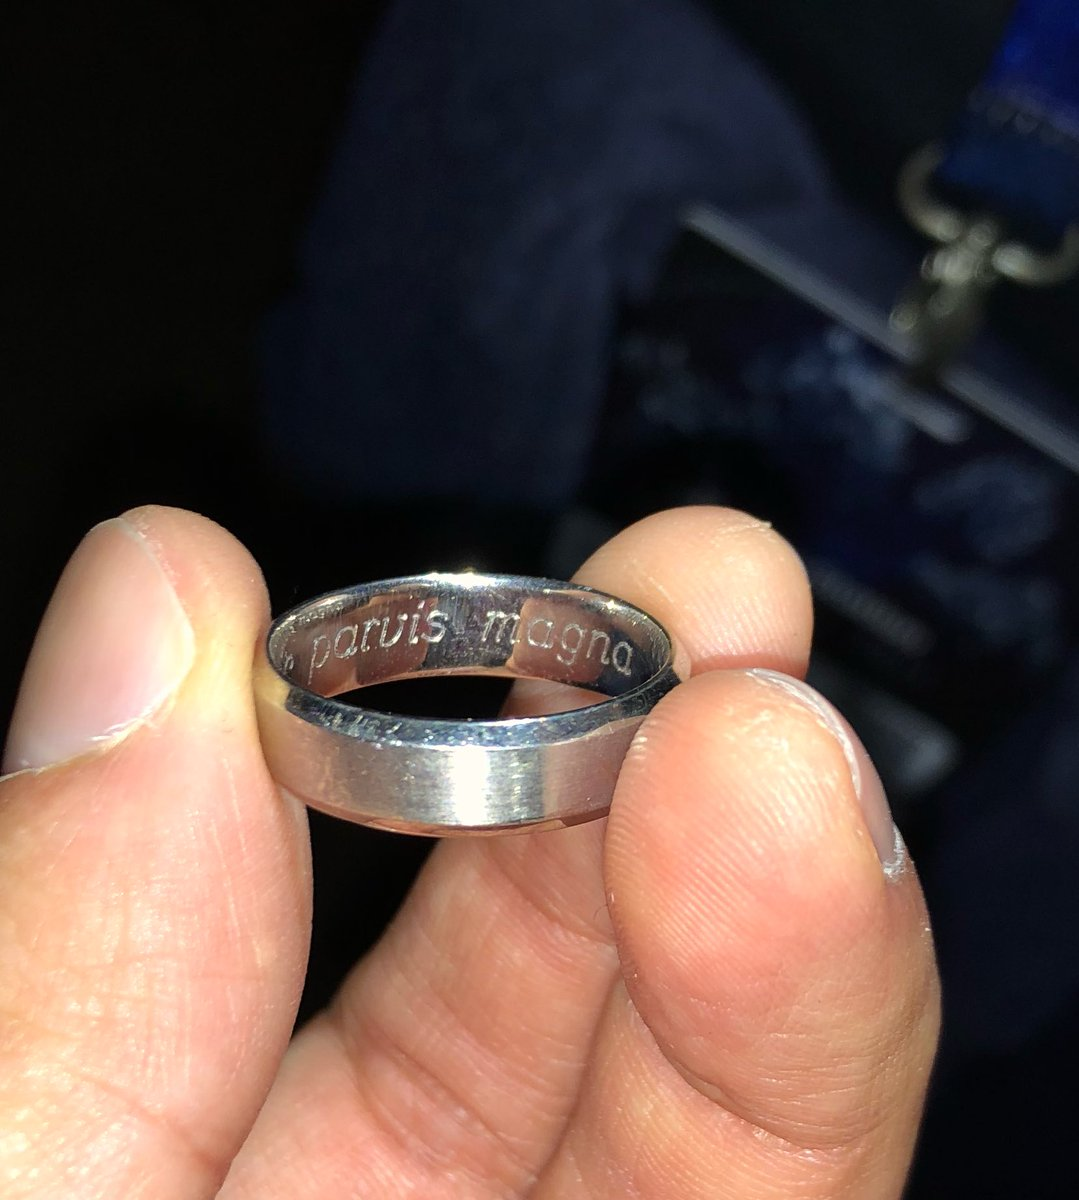 Dr Uckmann On Twitter Met This Couple Who Got Sic Parvis Magna Engraved On Their Wedding Bands So Cool Psx2017